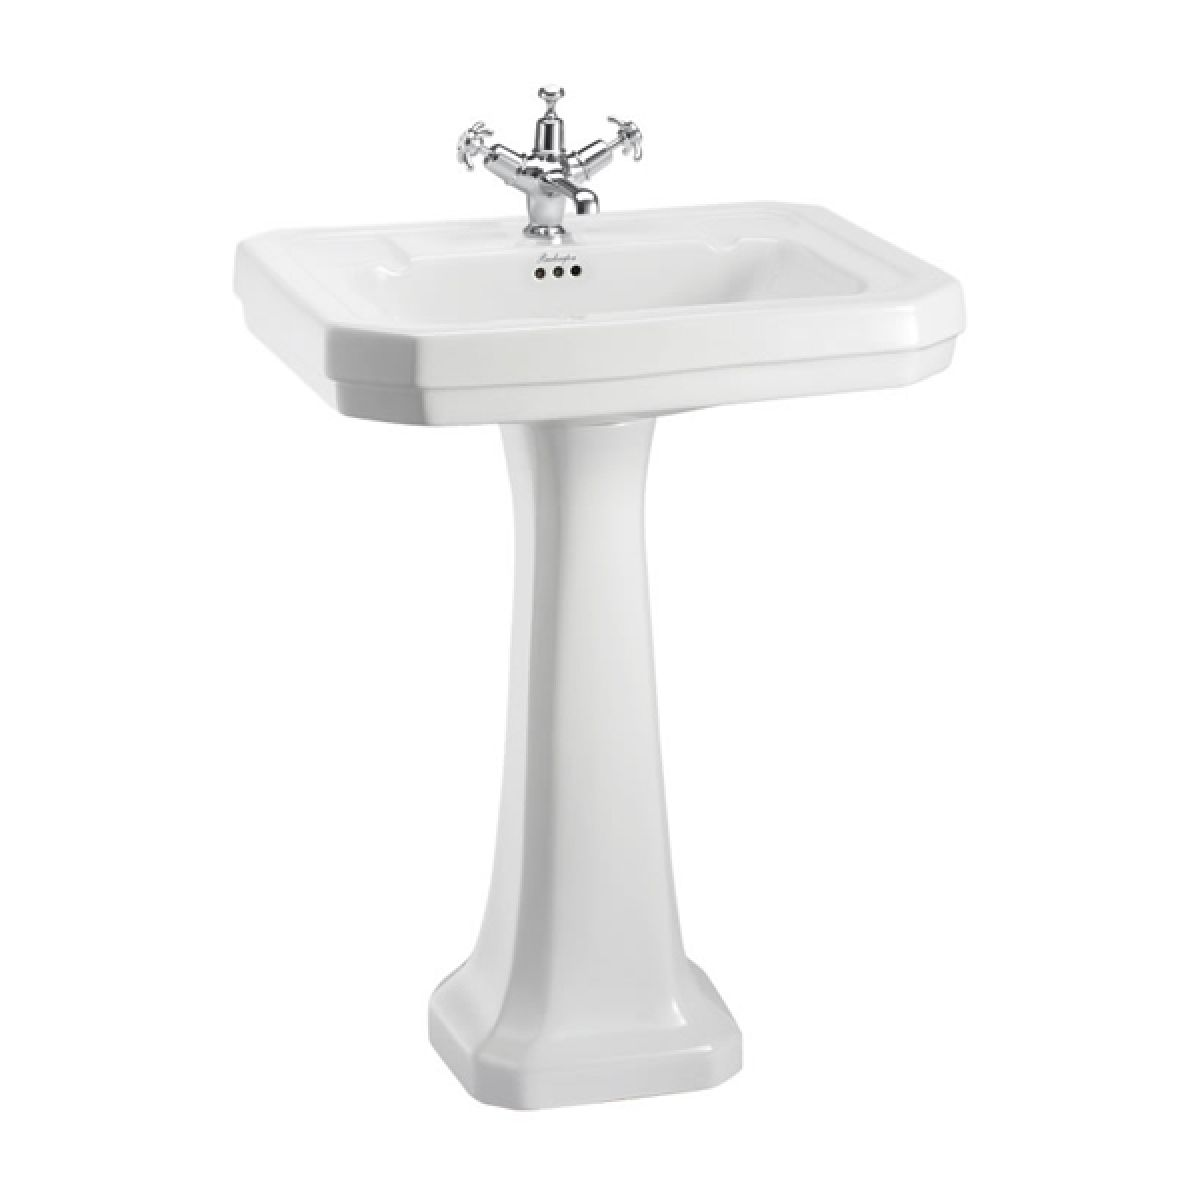 Burlington Victorian Basin with Standard Pedestal 610mm